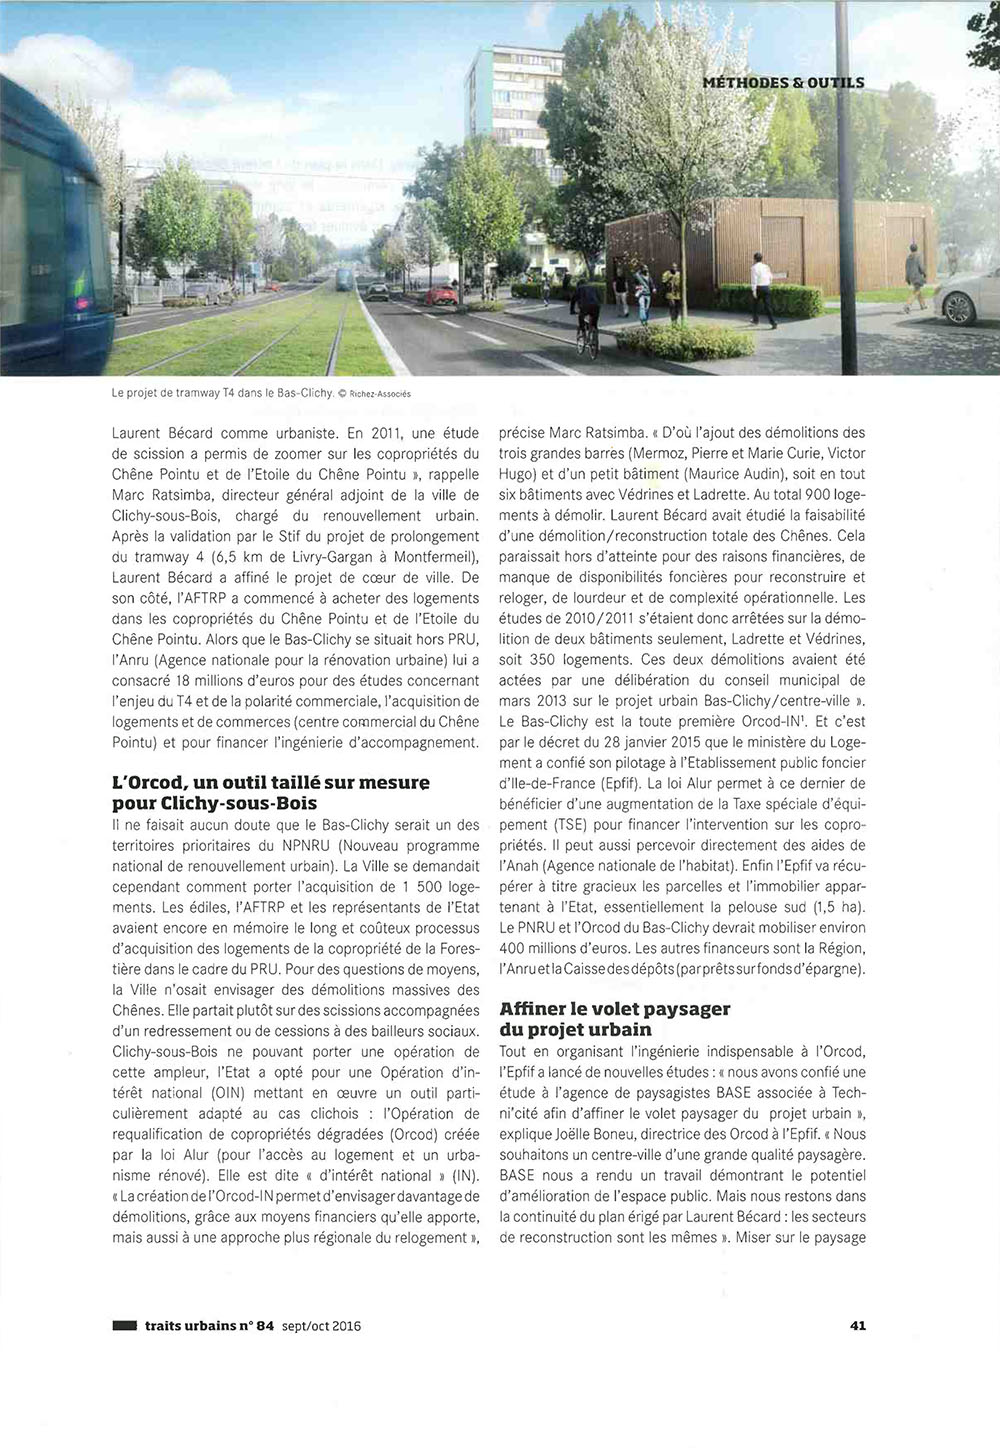 traits-urbains-sept-oct-2016-p41.jpg